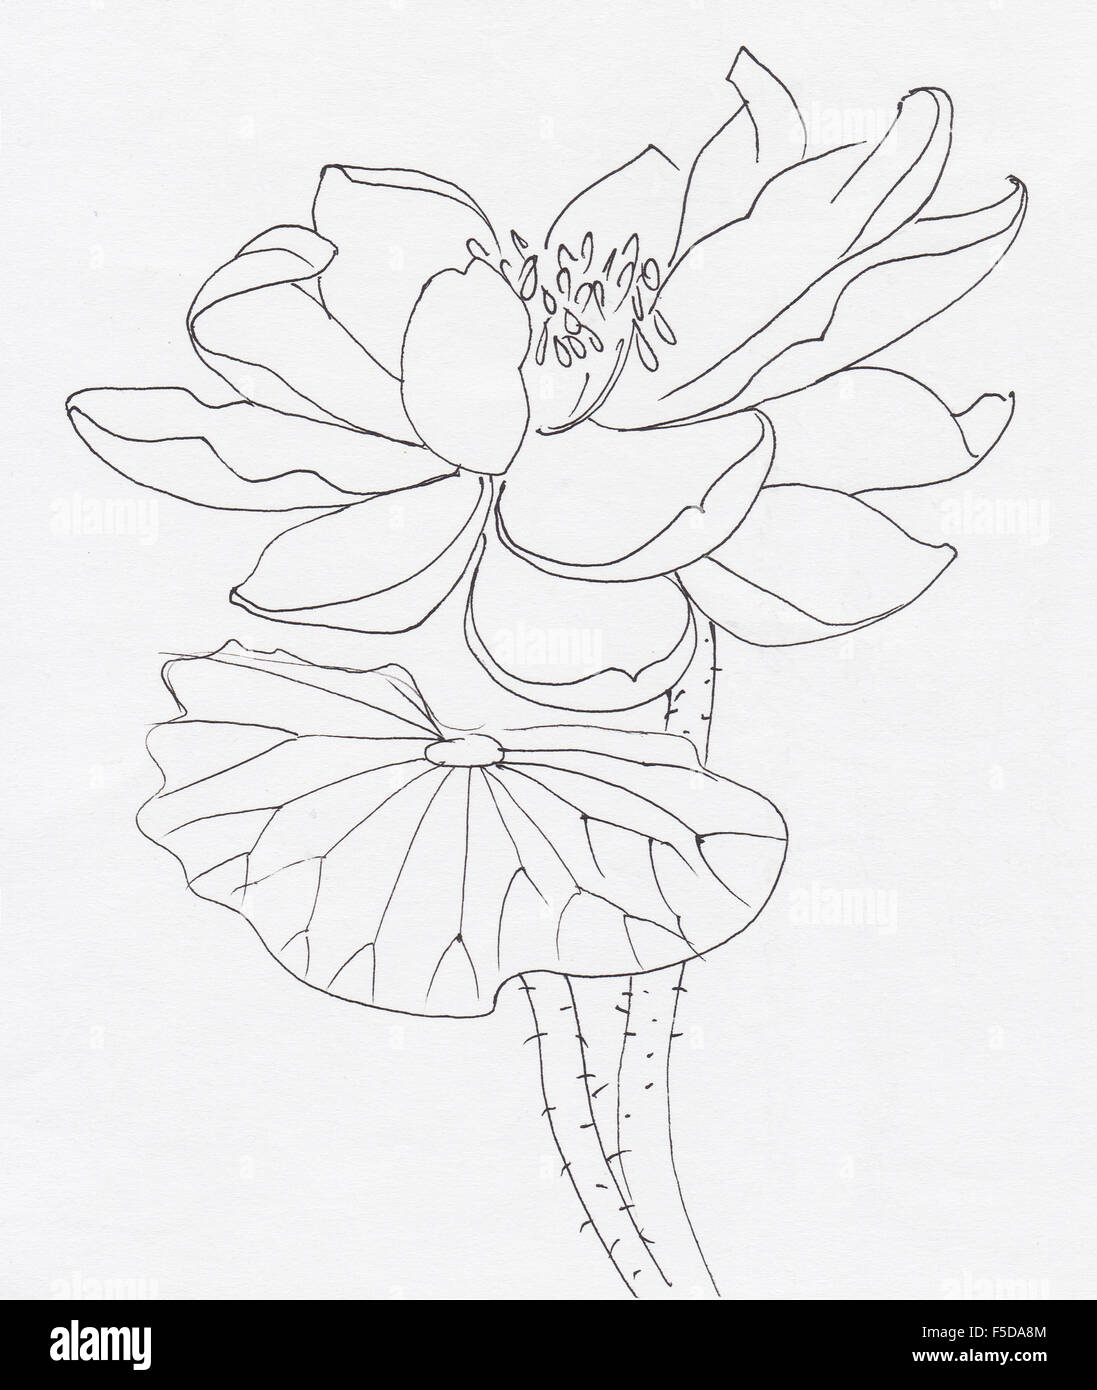 Lotus Flower Line Art Ink Stock Photos Lotus Flower Line Art Ink